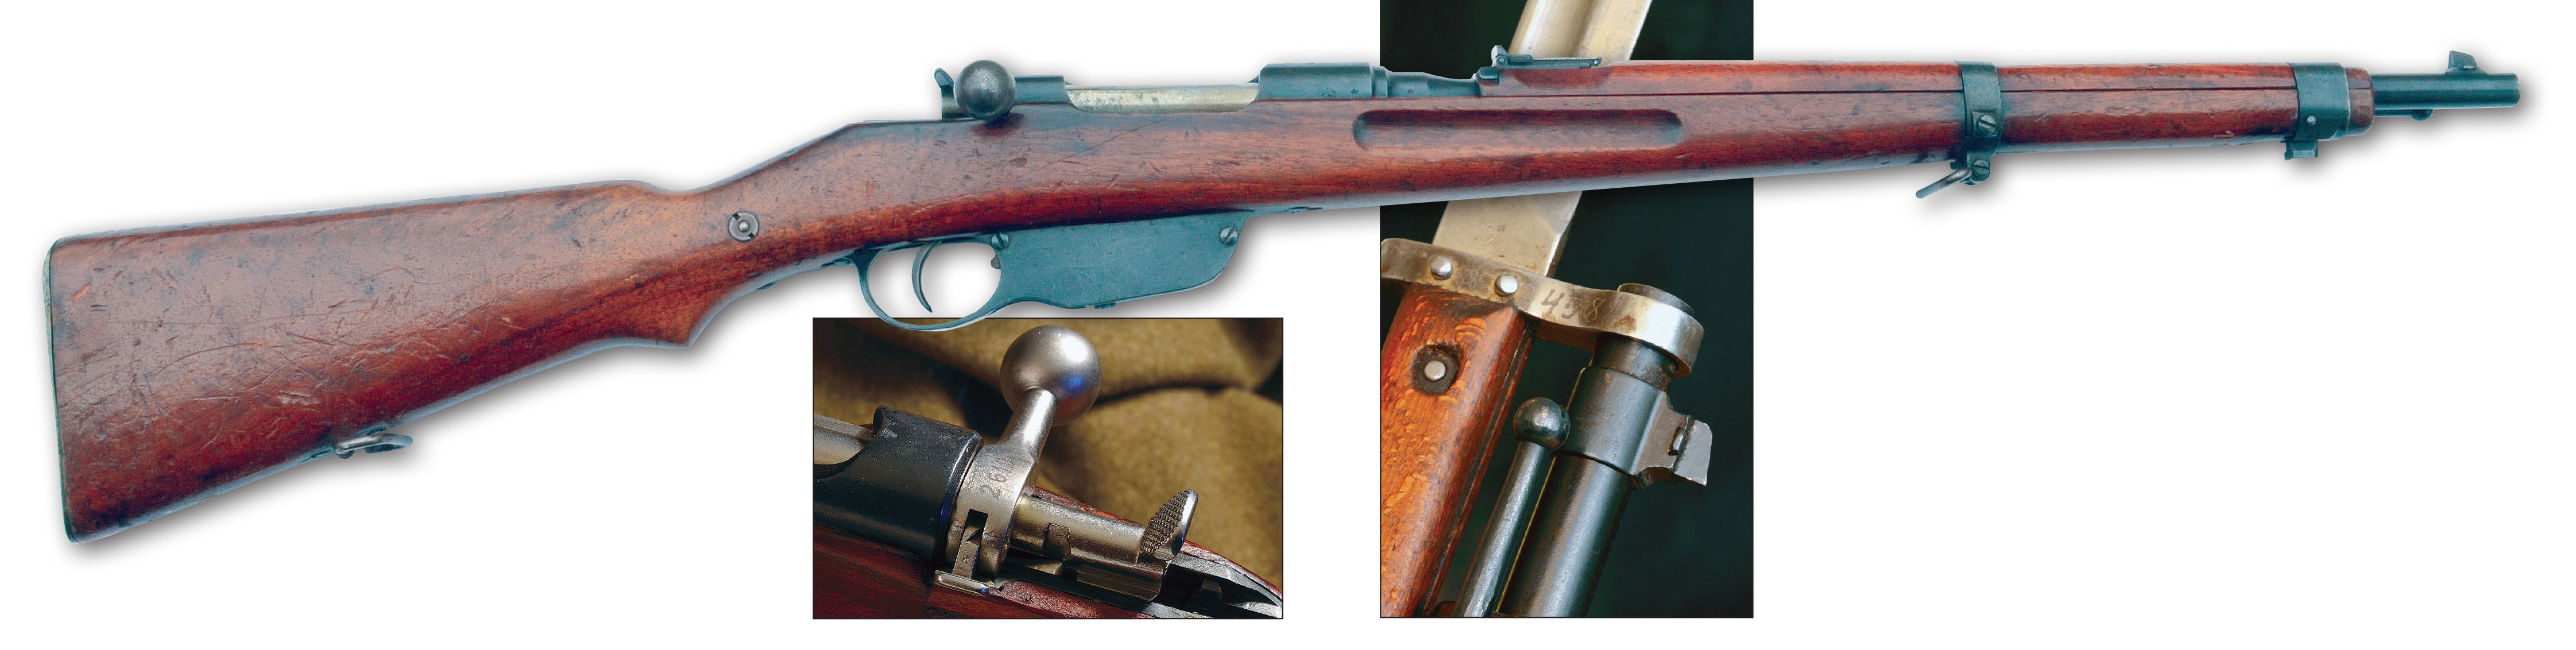 The Mannlicher M95 action's cocking piece could be manipulated with the thumb, and the safety was simple and out of the way. It was the first rifle to use stainless steel (the bolt), and its barrel was thinner and lighter, because it was made of a special steel alloy developed by Steyr. The Mannlicher M95 Stutzen had both a bayonet lug and stacking rod that were omitted from the otherwise similar M95 cavalry carbine.